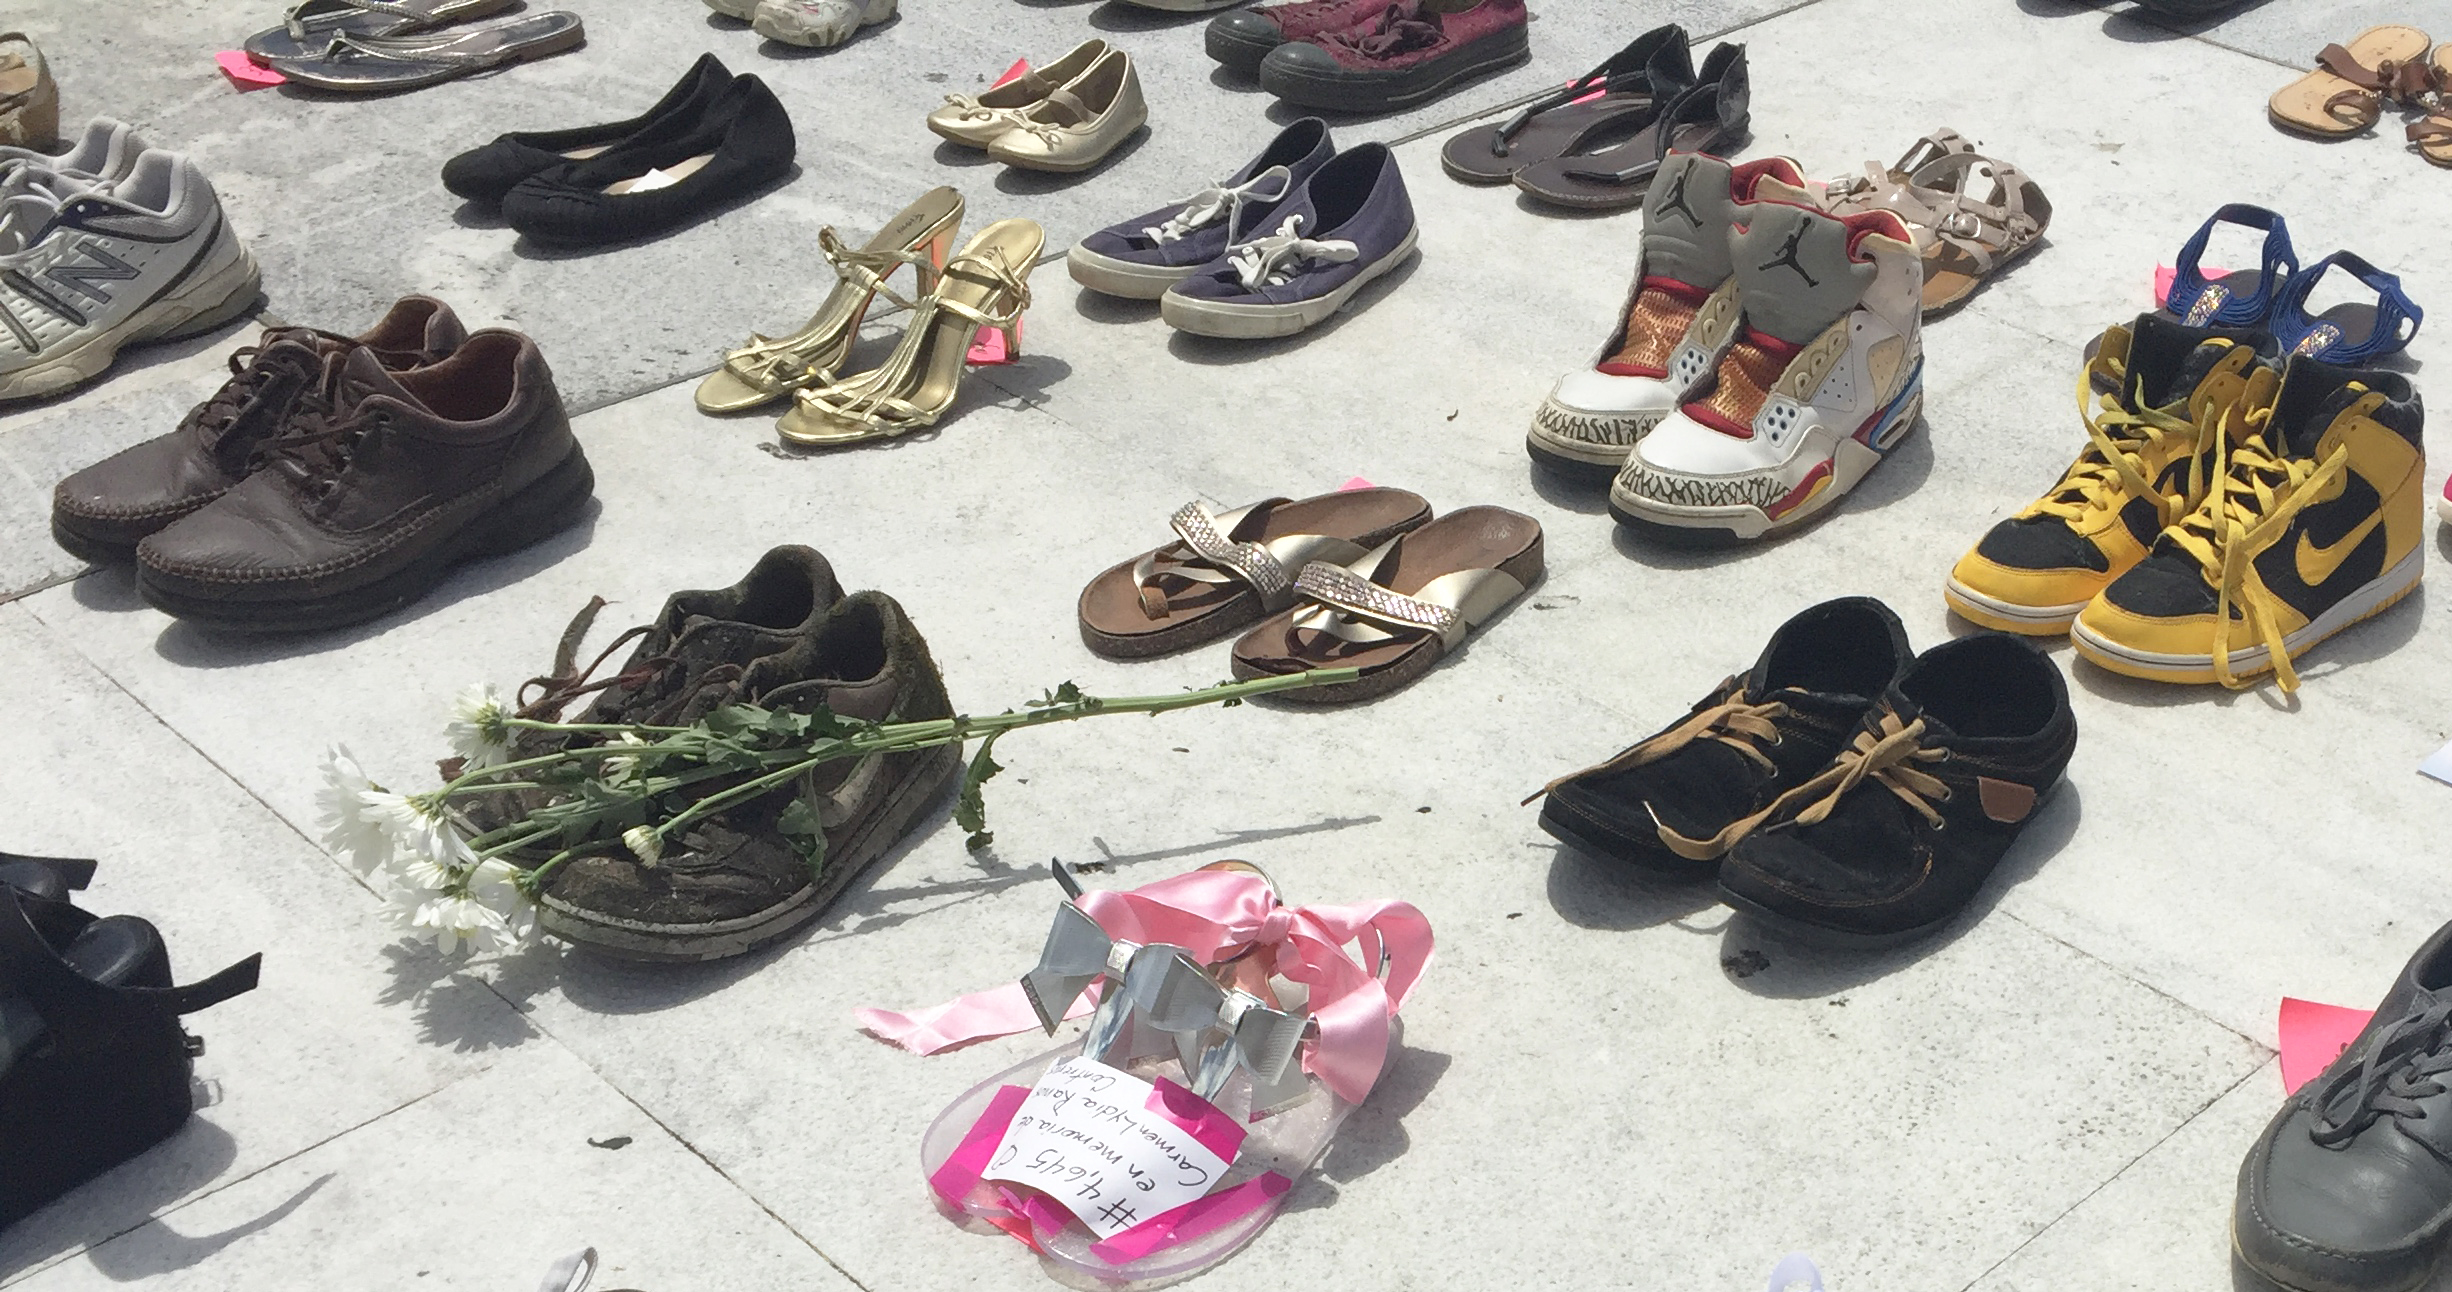 This Impromptu Memorial Is a Haunting Depiction of the Massive Amount of Hurricane Maria Victims